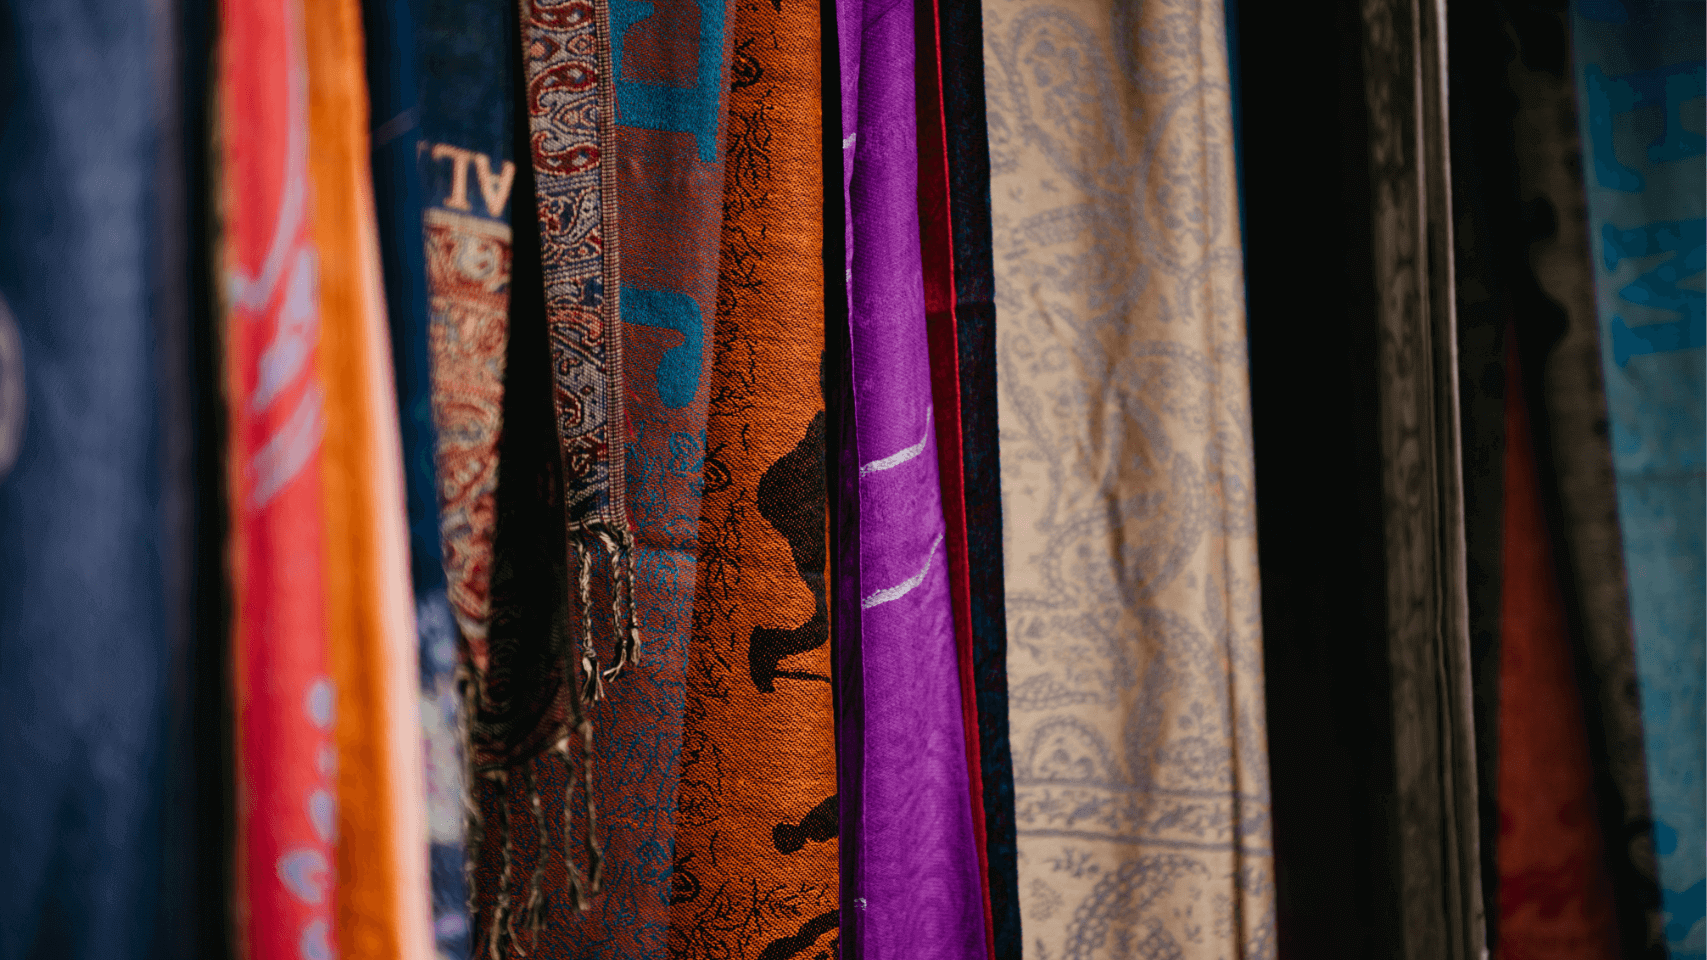 Cover image for an article about different types of fabrics with different fabrics hang next to each other